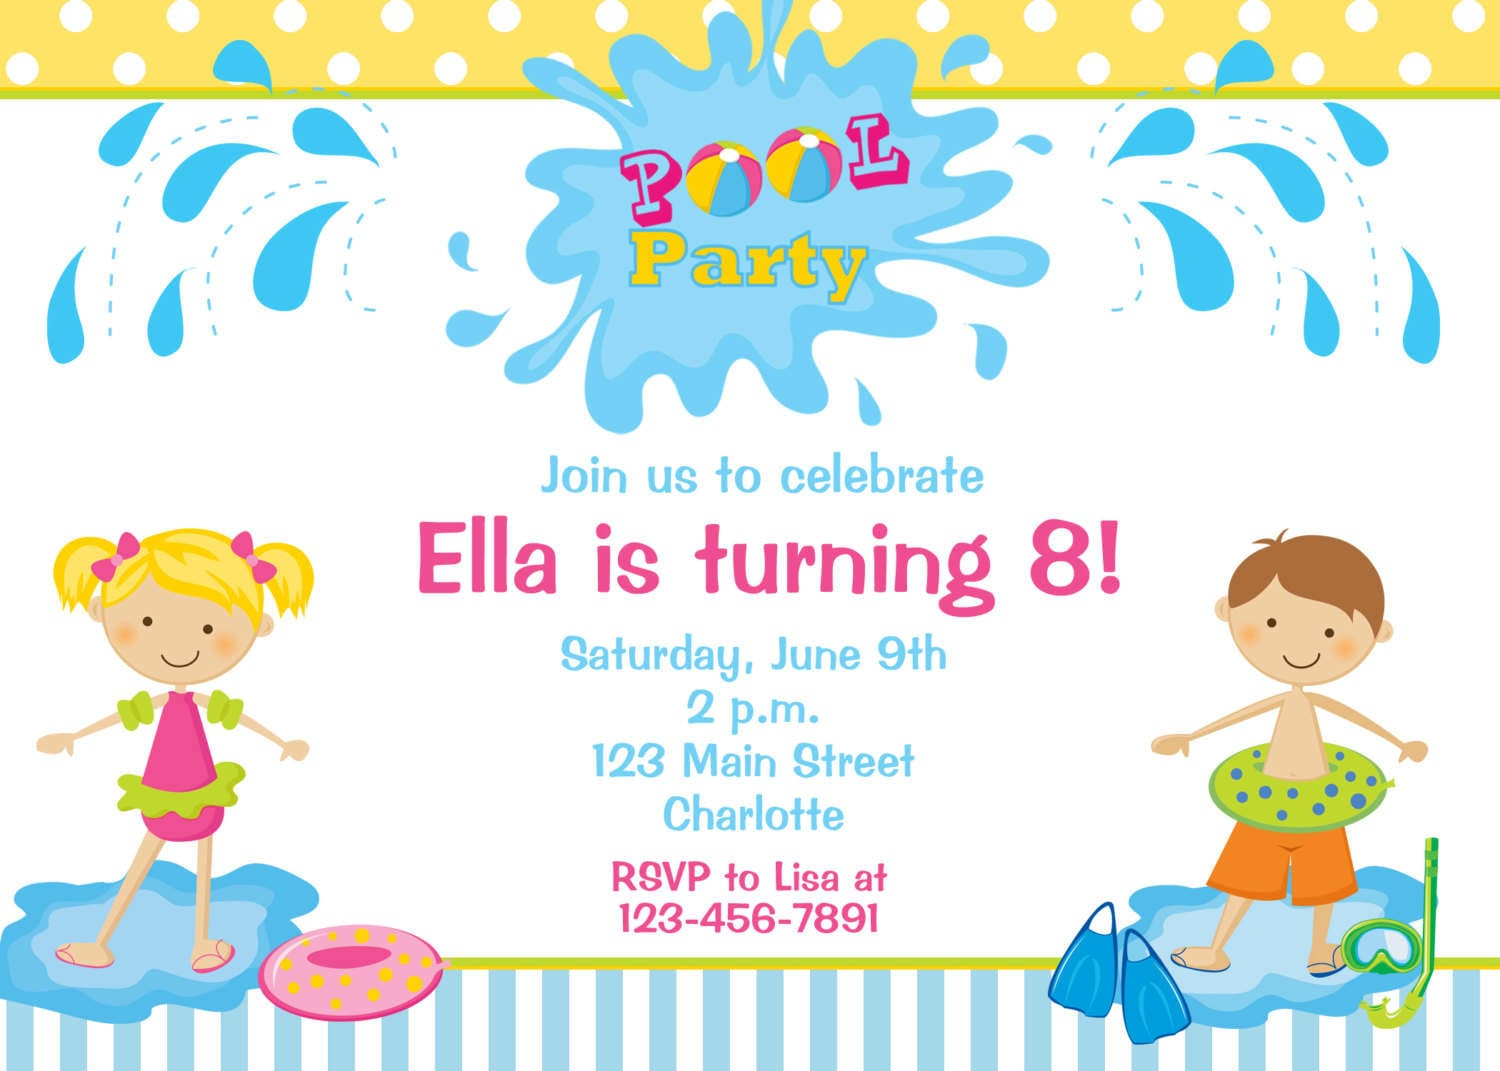 Party Invitations Cool Kids Party Invitations Designs Hd Wallpaper